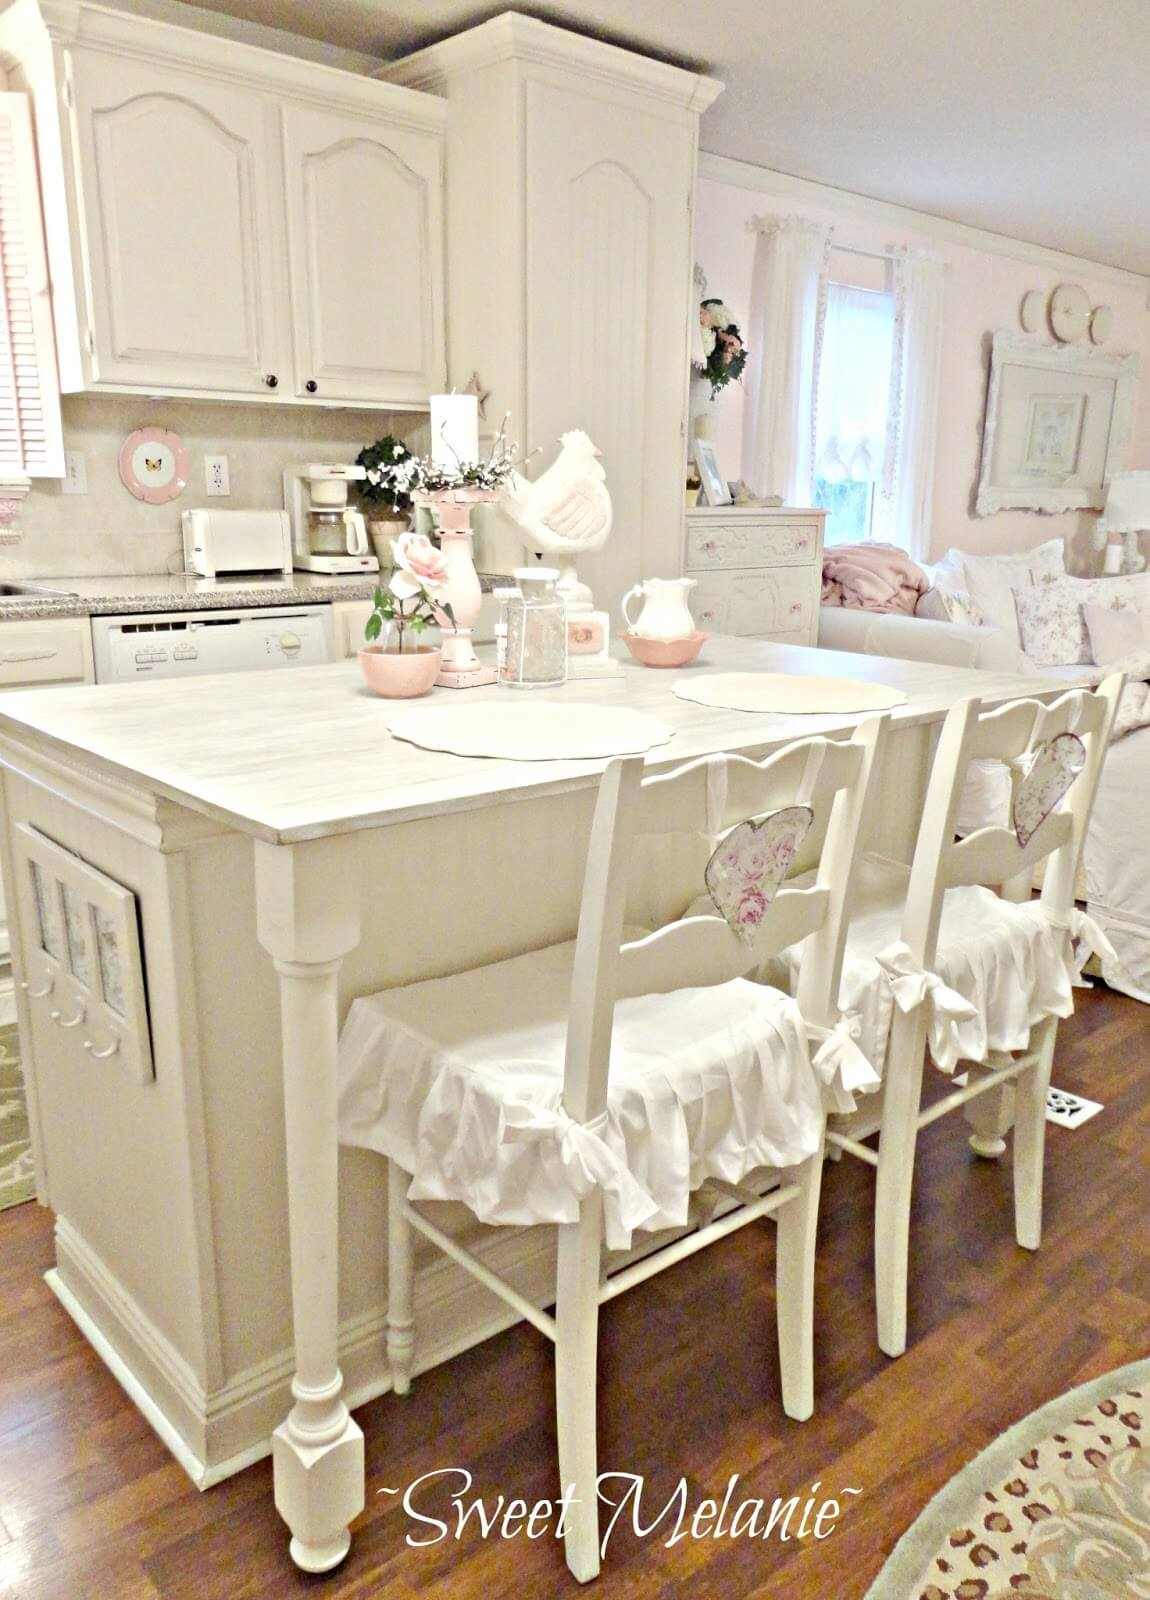 1 Cream Colored Cabinets And Ruffled Seat Covers